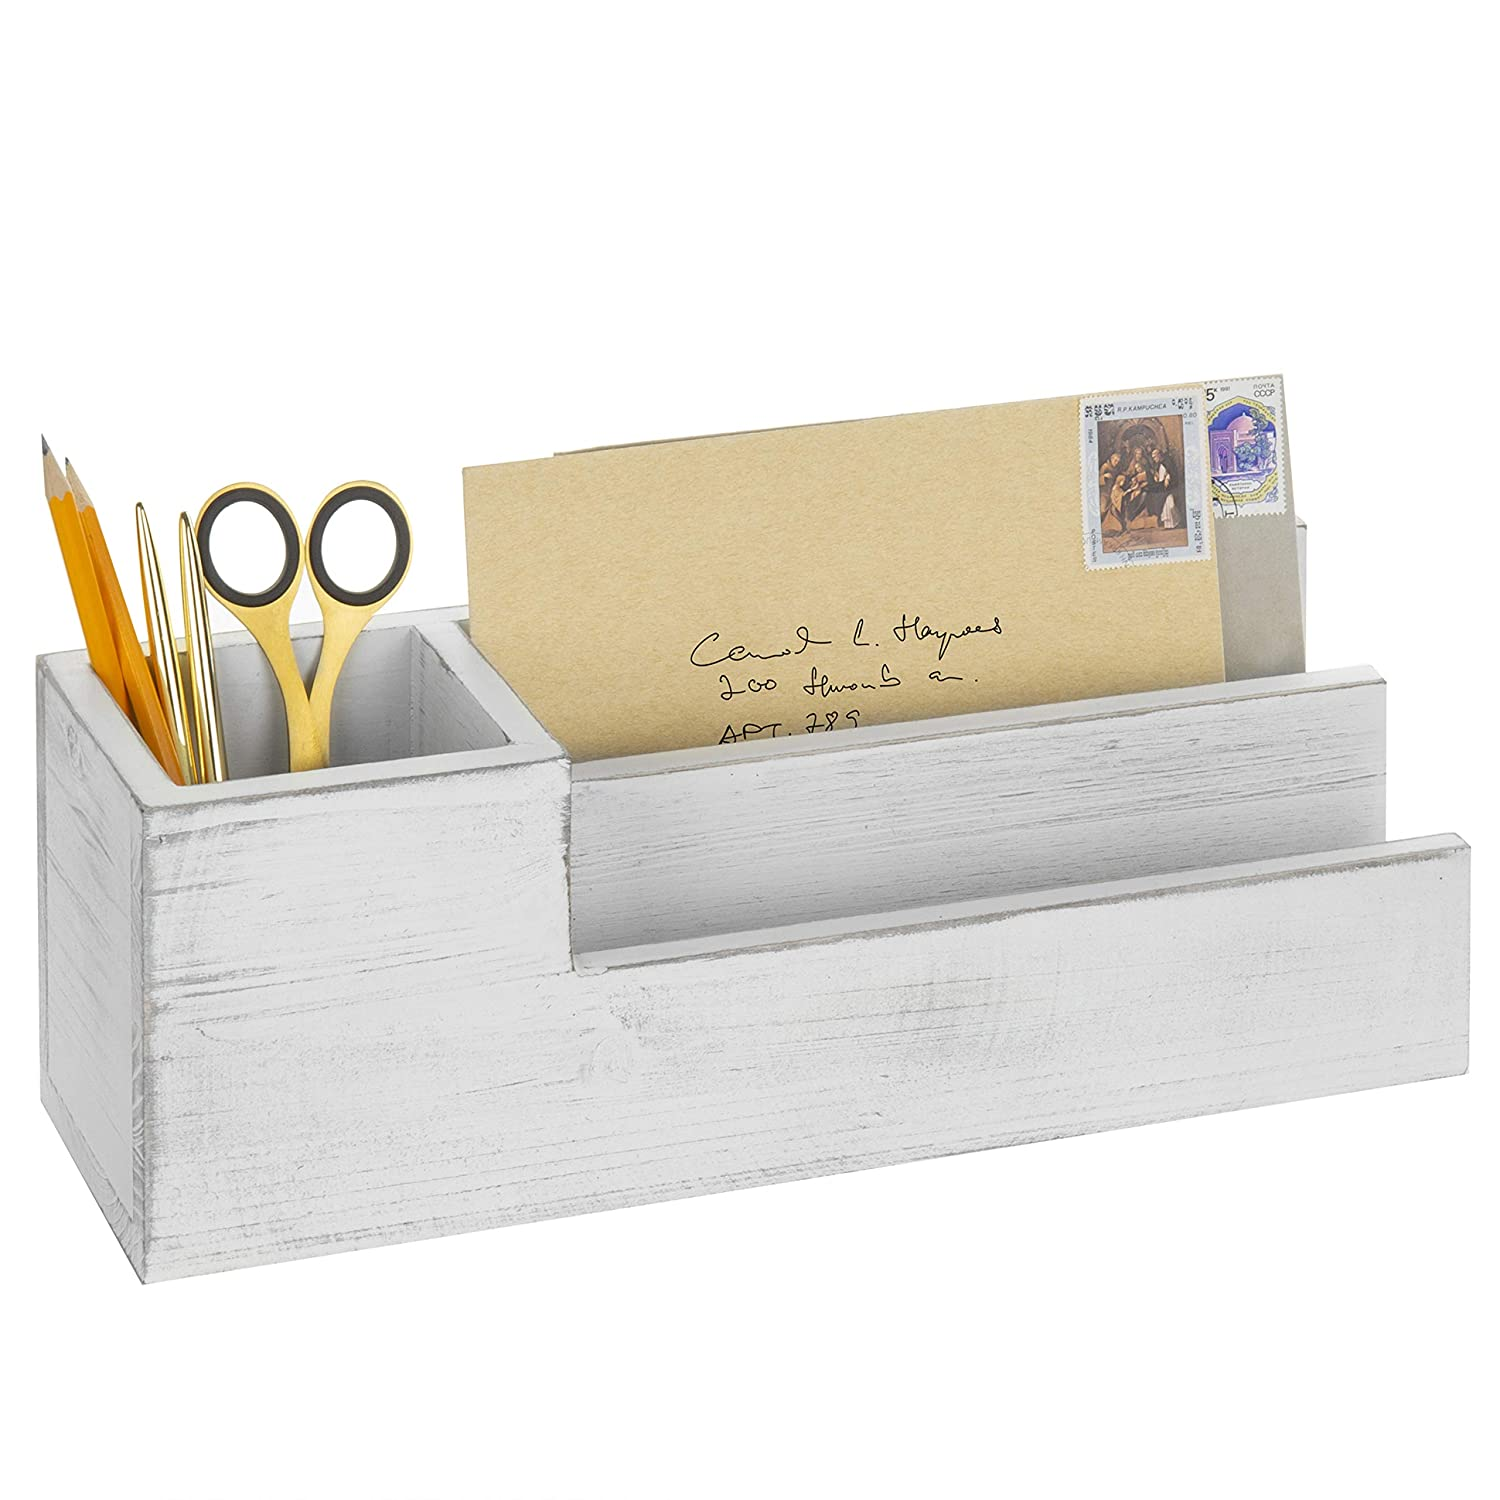 MyGift Vintage White Wood Desktop Pen Caddy & Letter Sorter